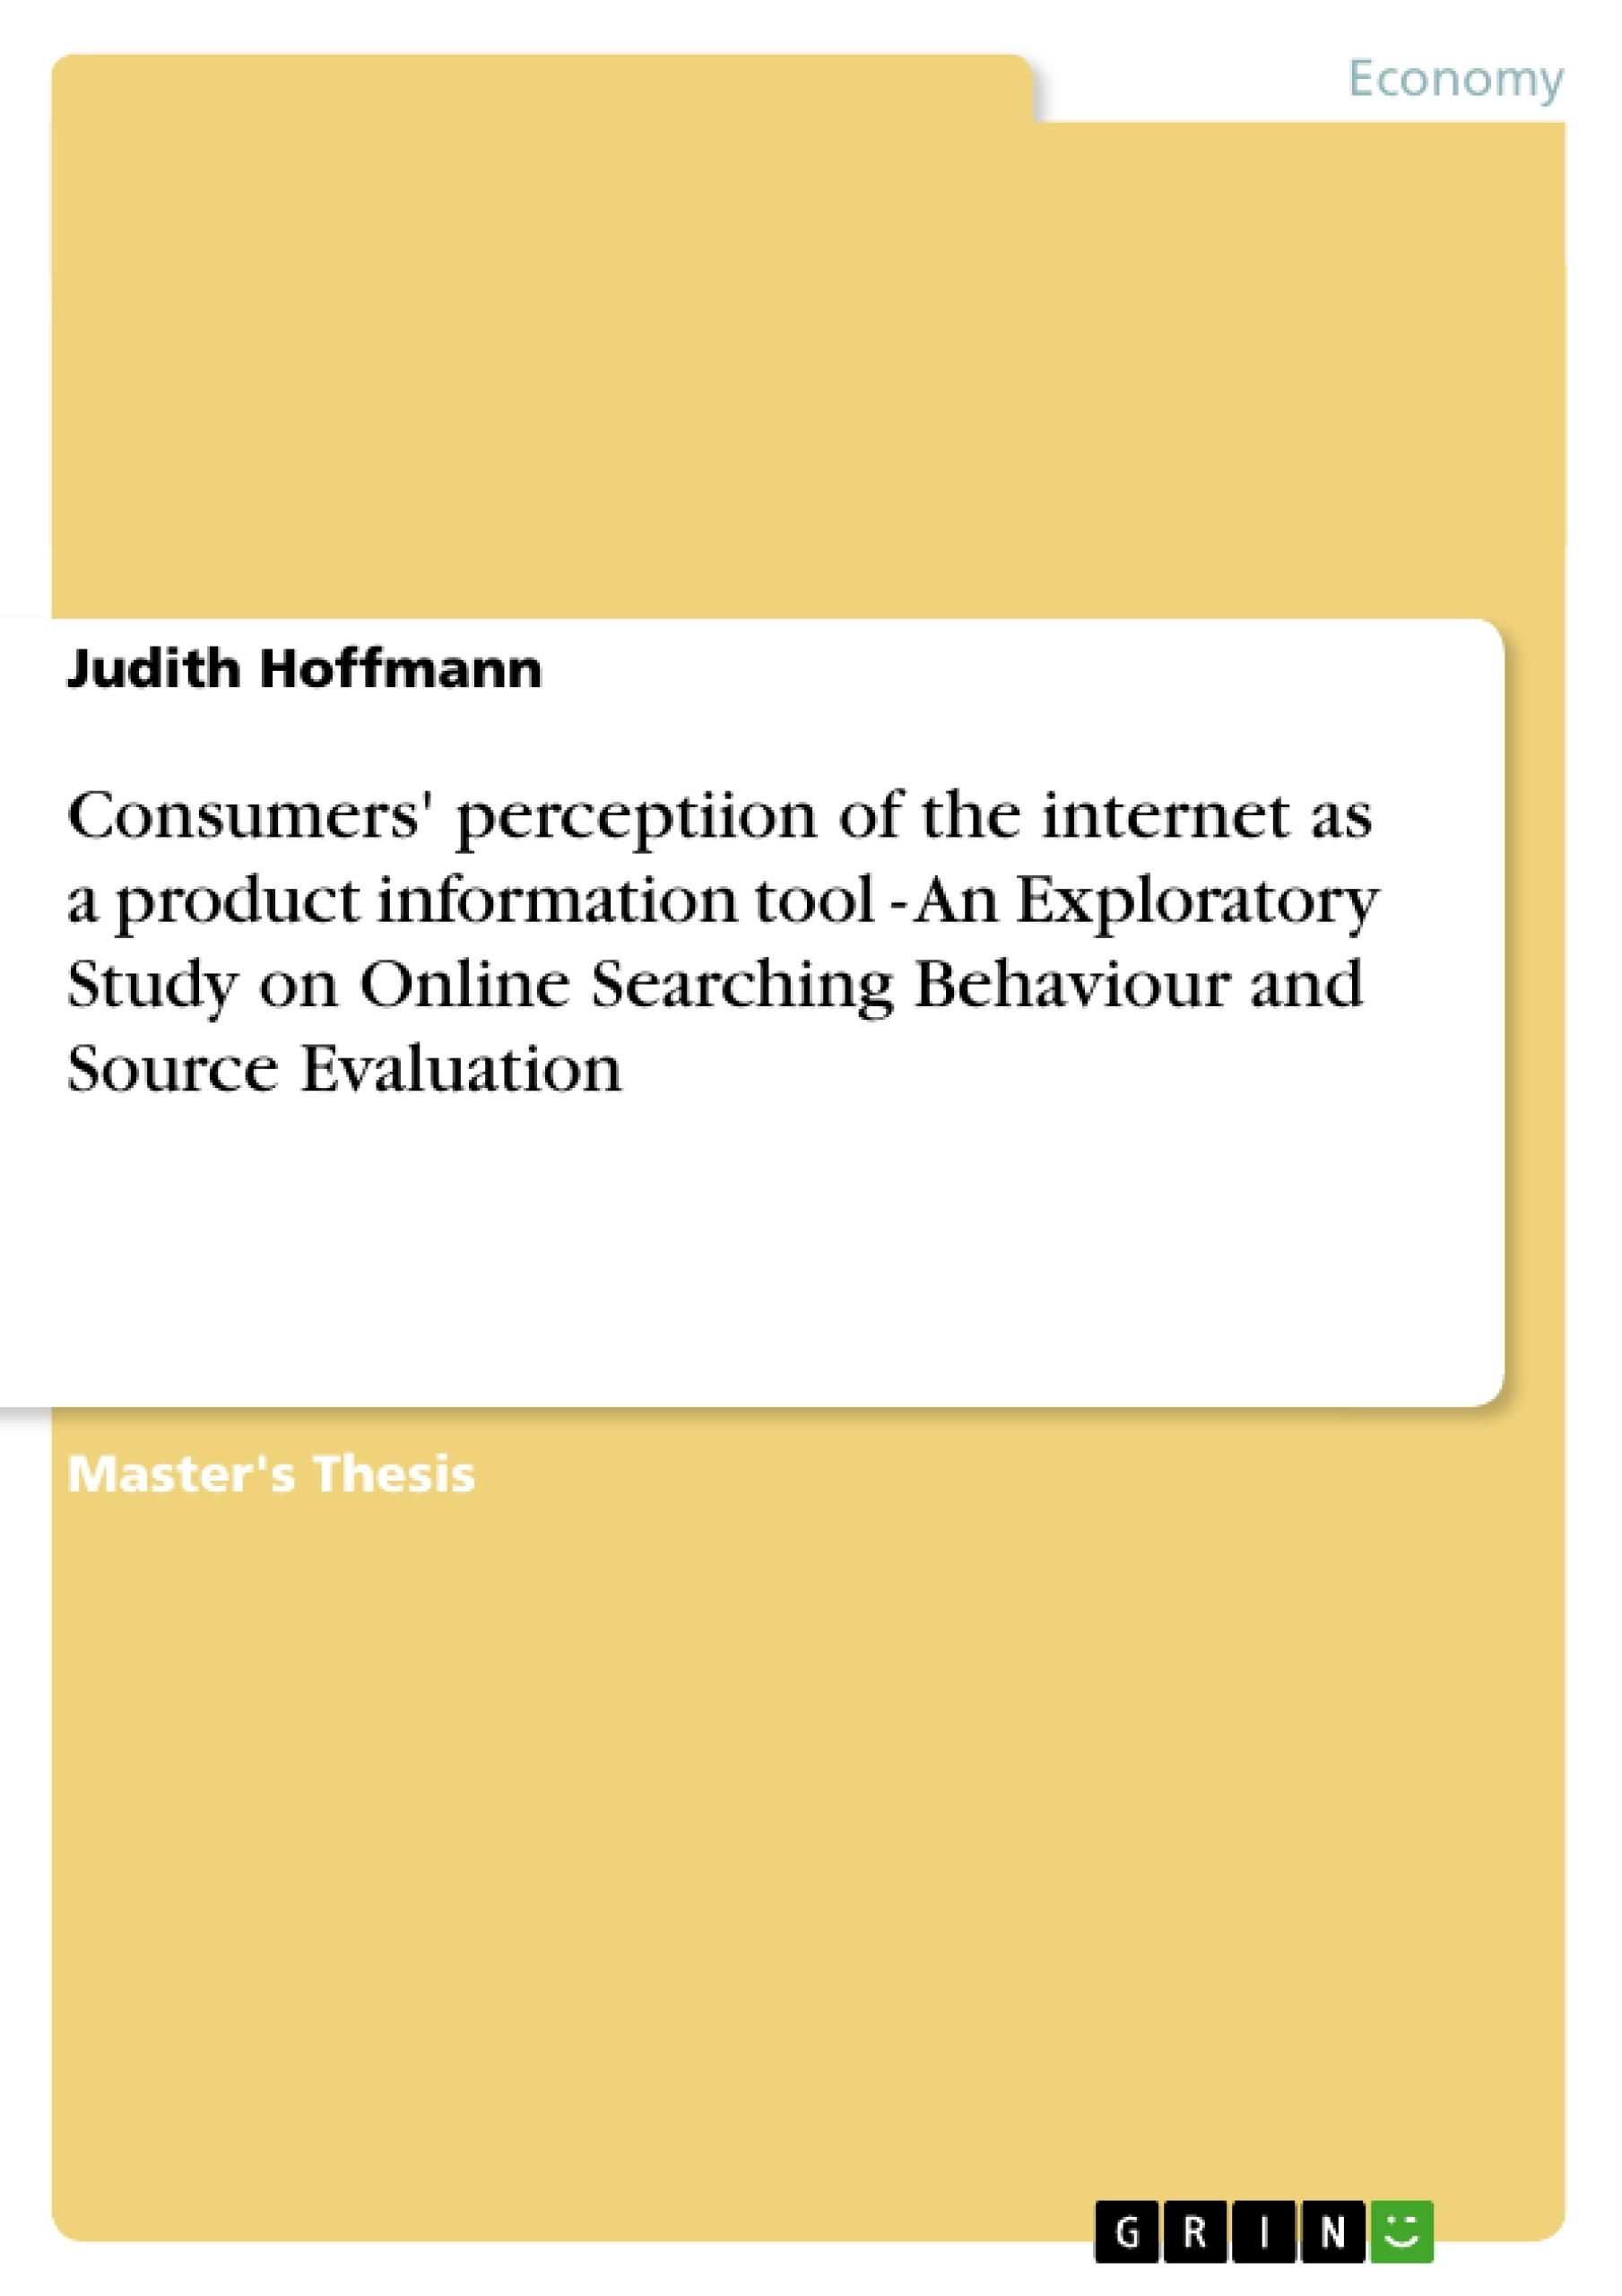 Title: Consumers' perceptiion of the internet as a product information tool - An Exploratory Study on Online Searching Behaviour and Source Evaluation